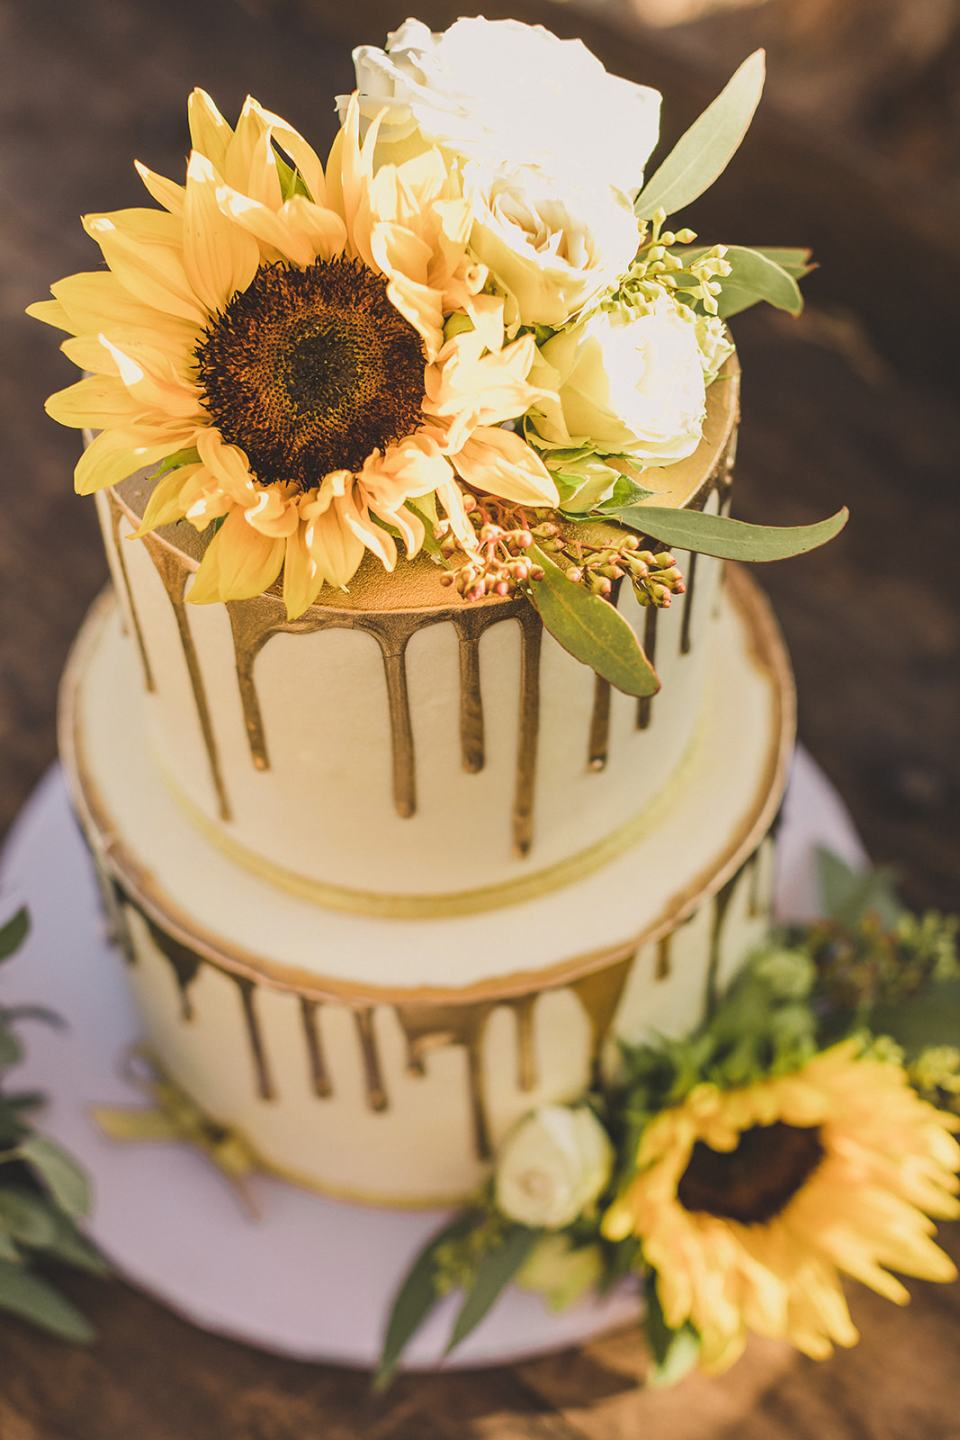 wedding cake with sunflowers and drip gold icing